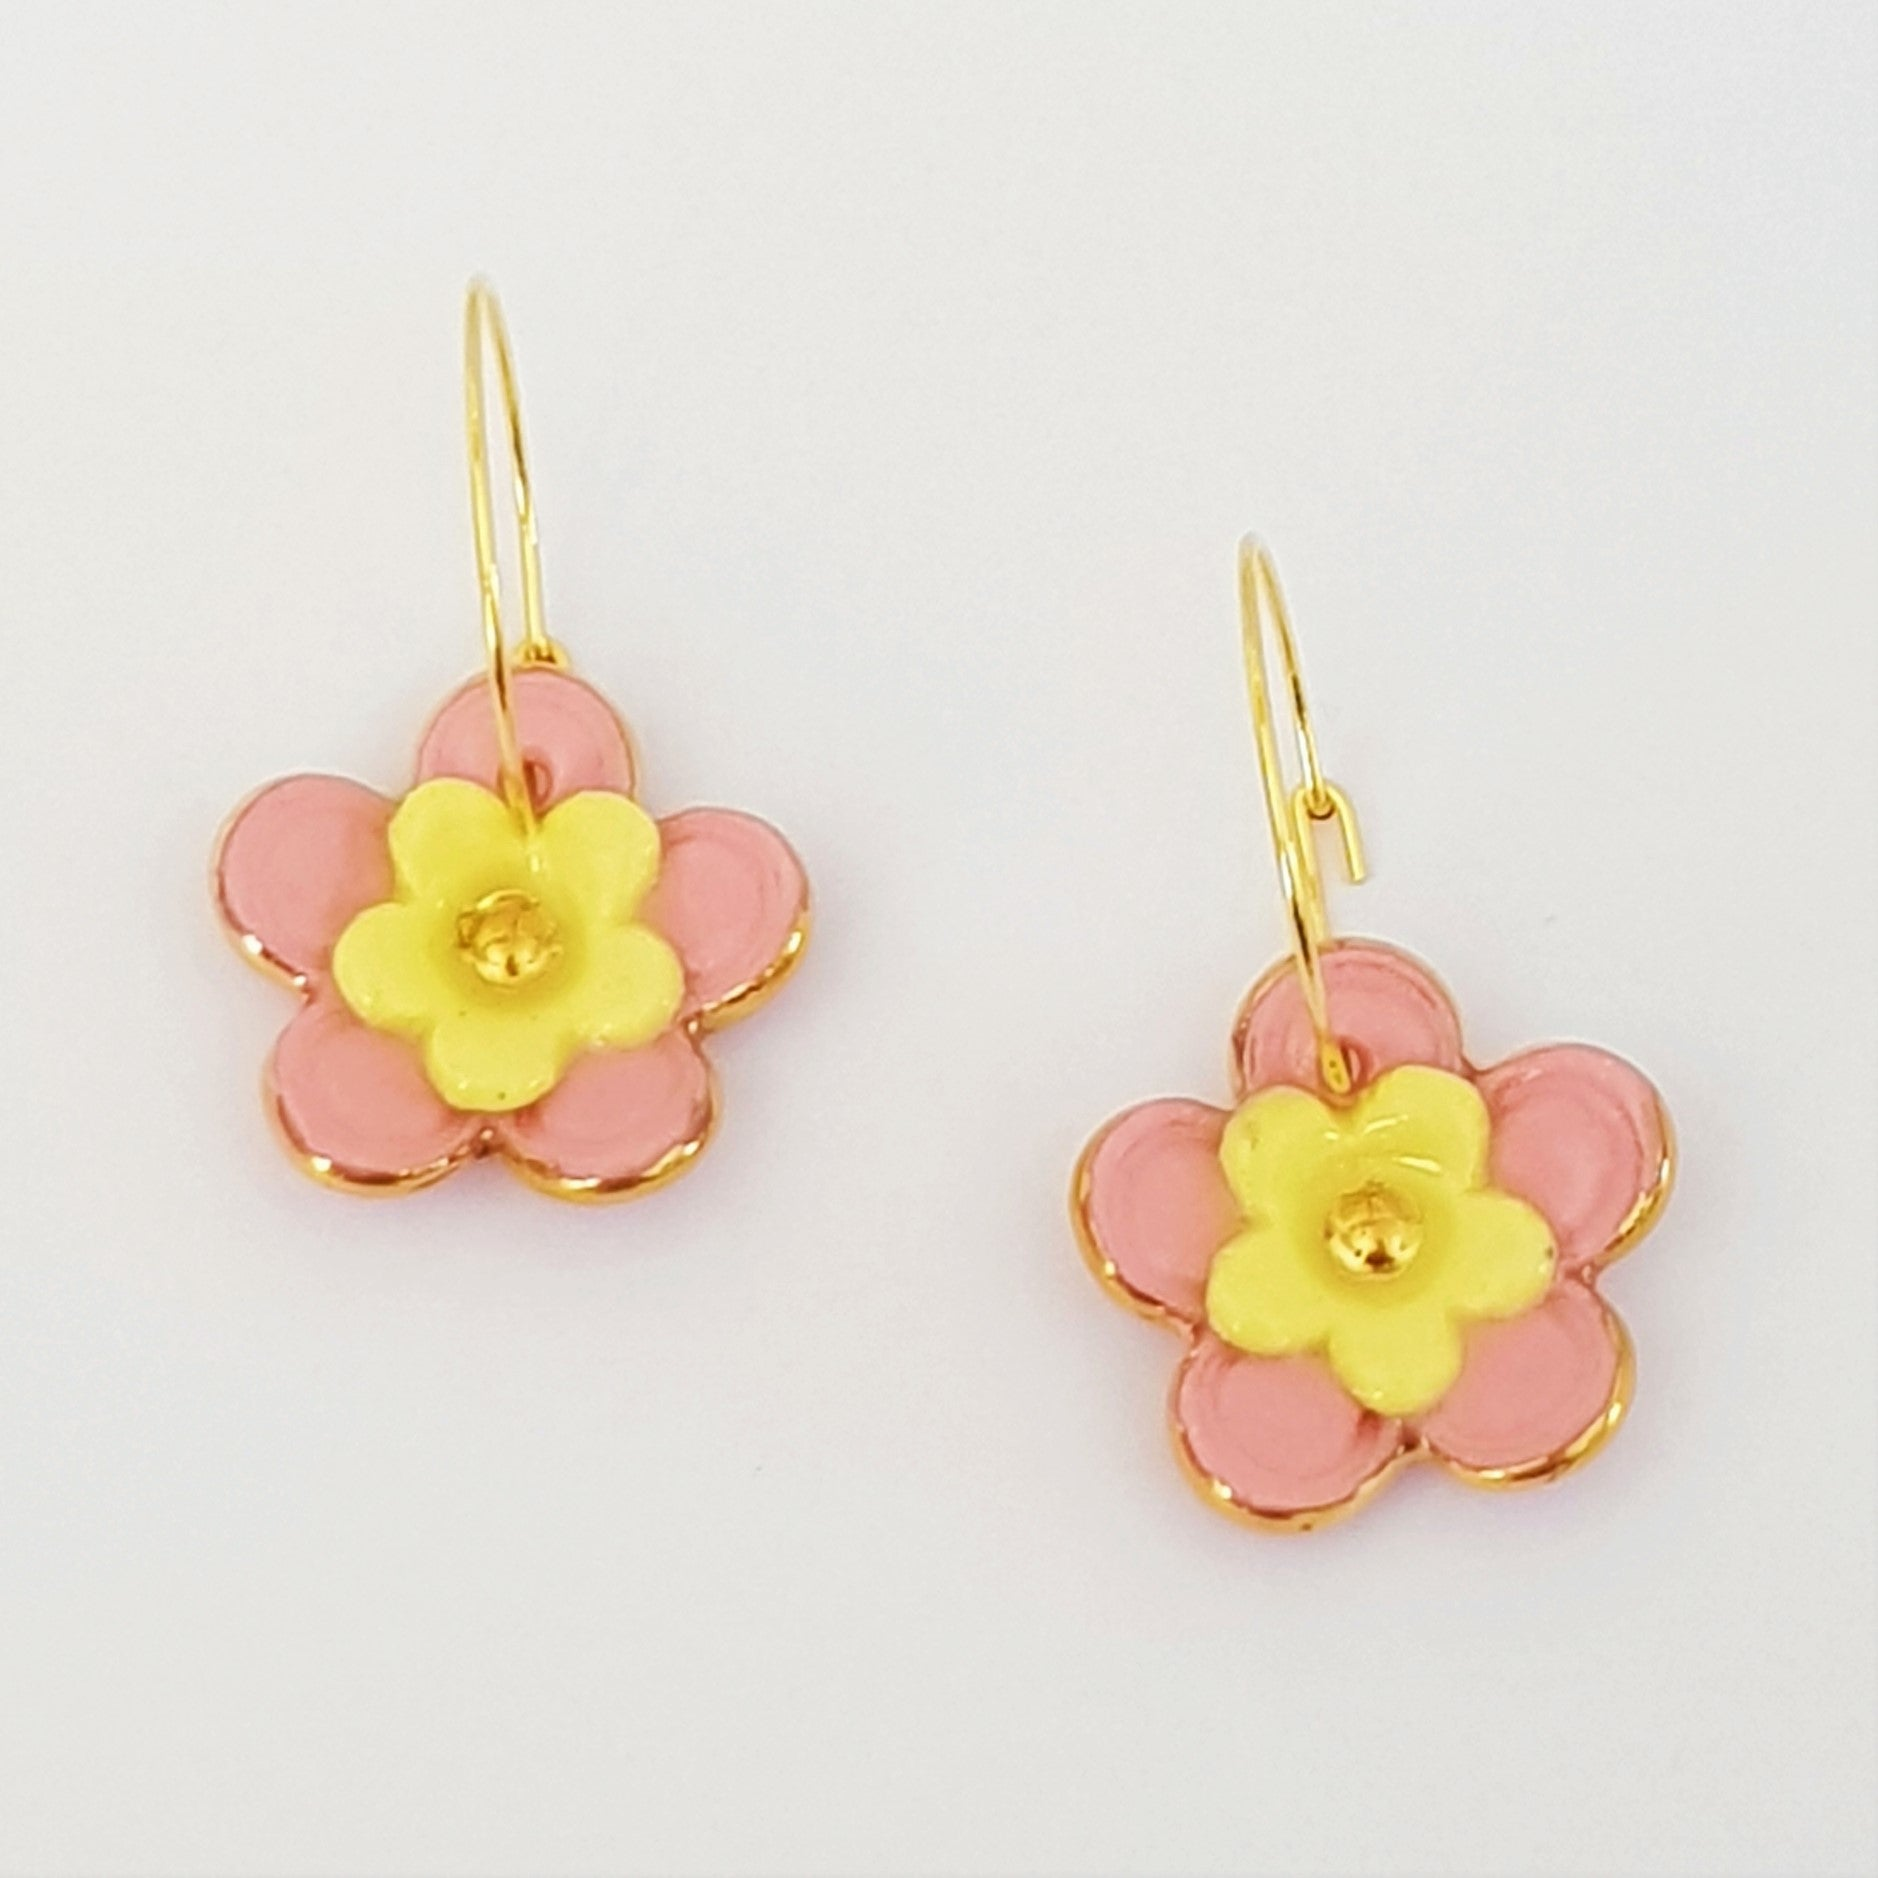 Floral Collective hoops in pink and lemon.